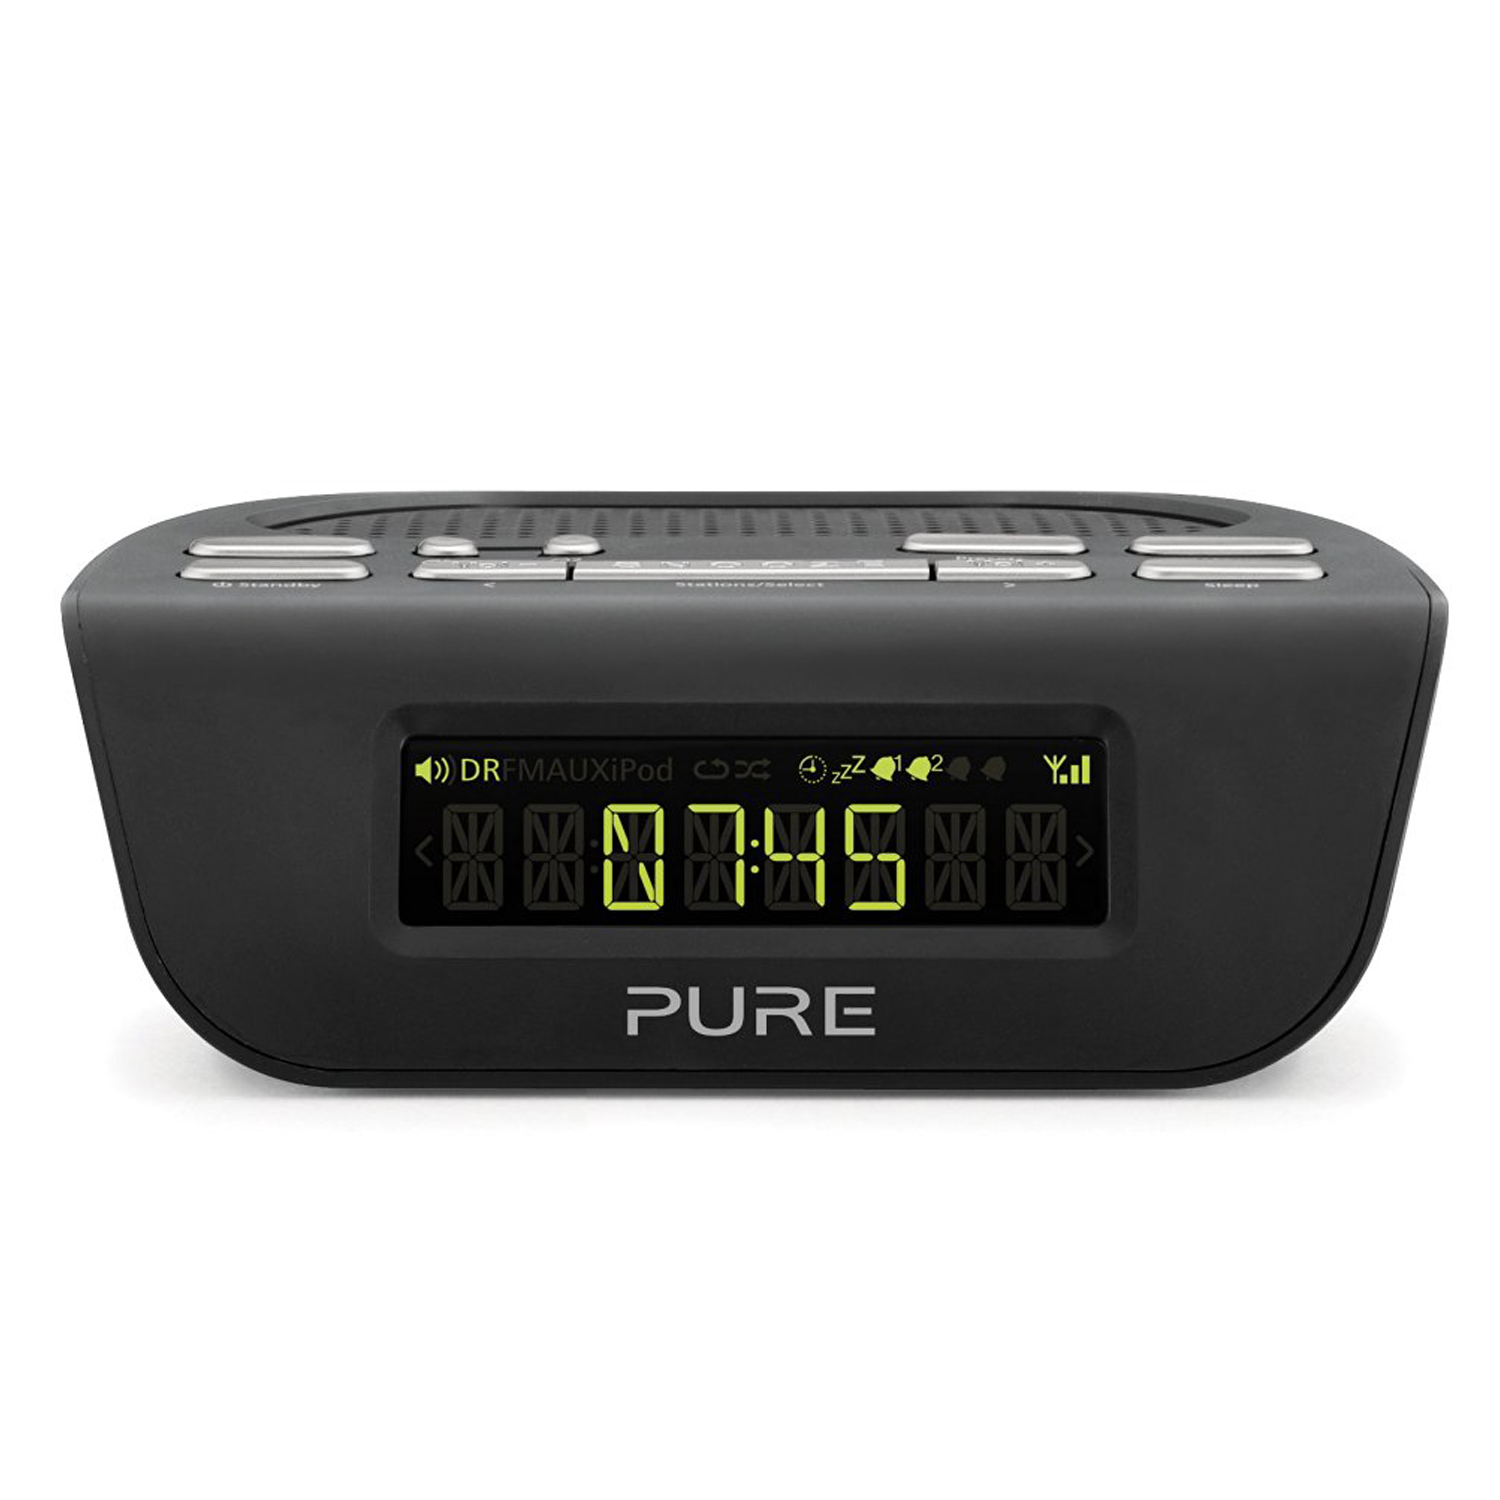 pure siesta mi series 2 dab fm digital radio alarm clock black unit only 759454813956 ebay. Black Bedroom Furniture Sets. Home Design Ideas